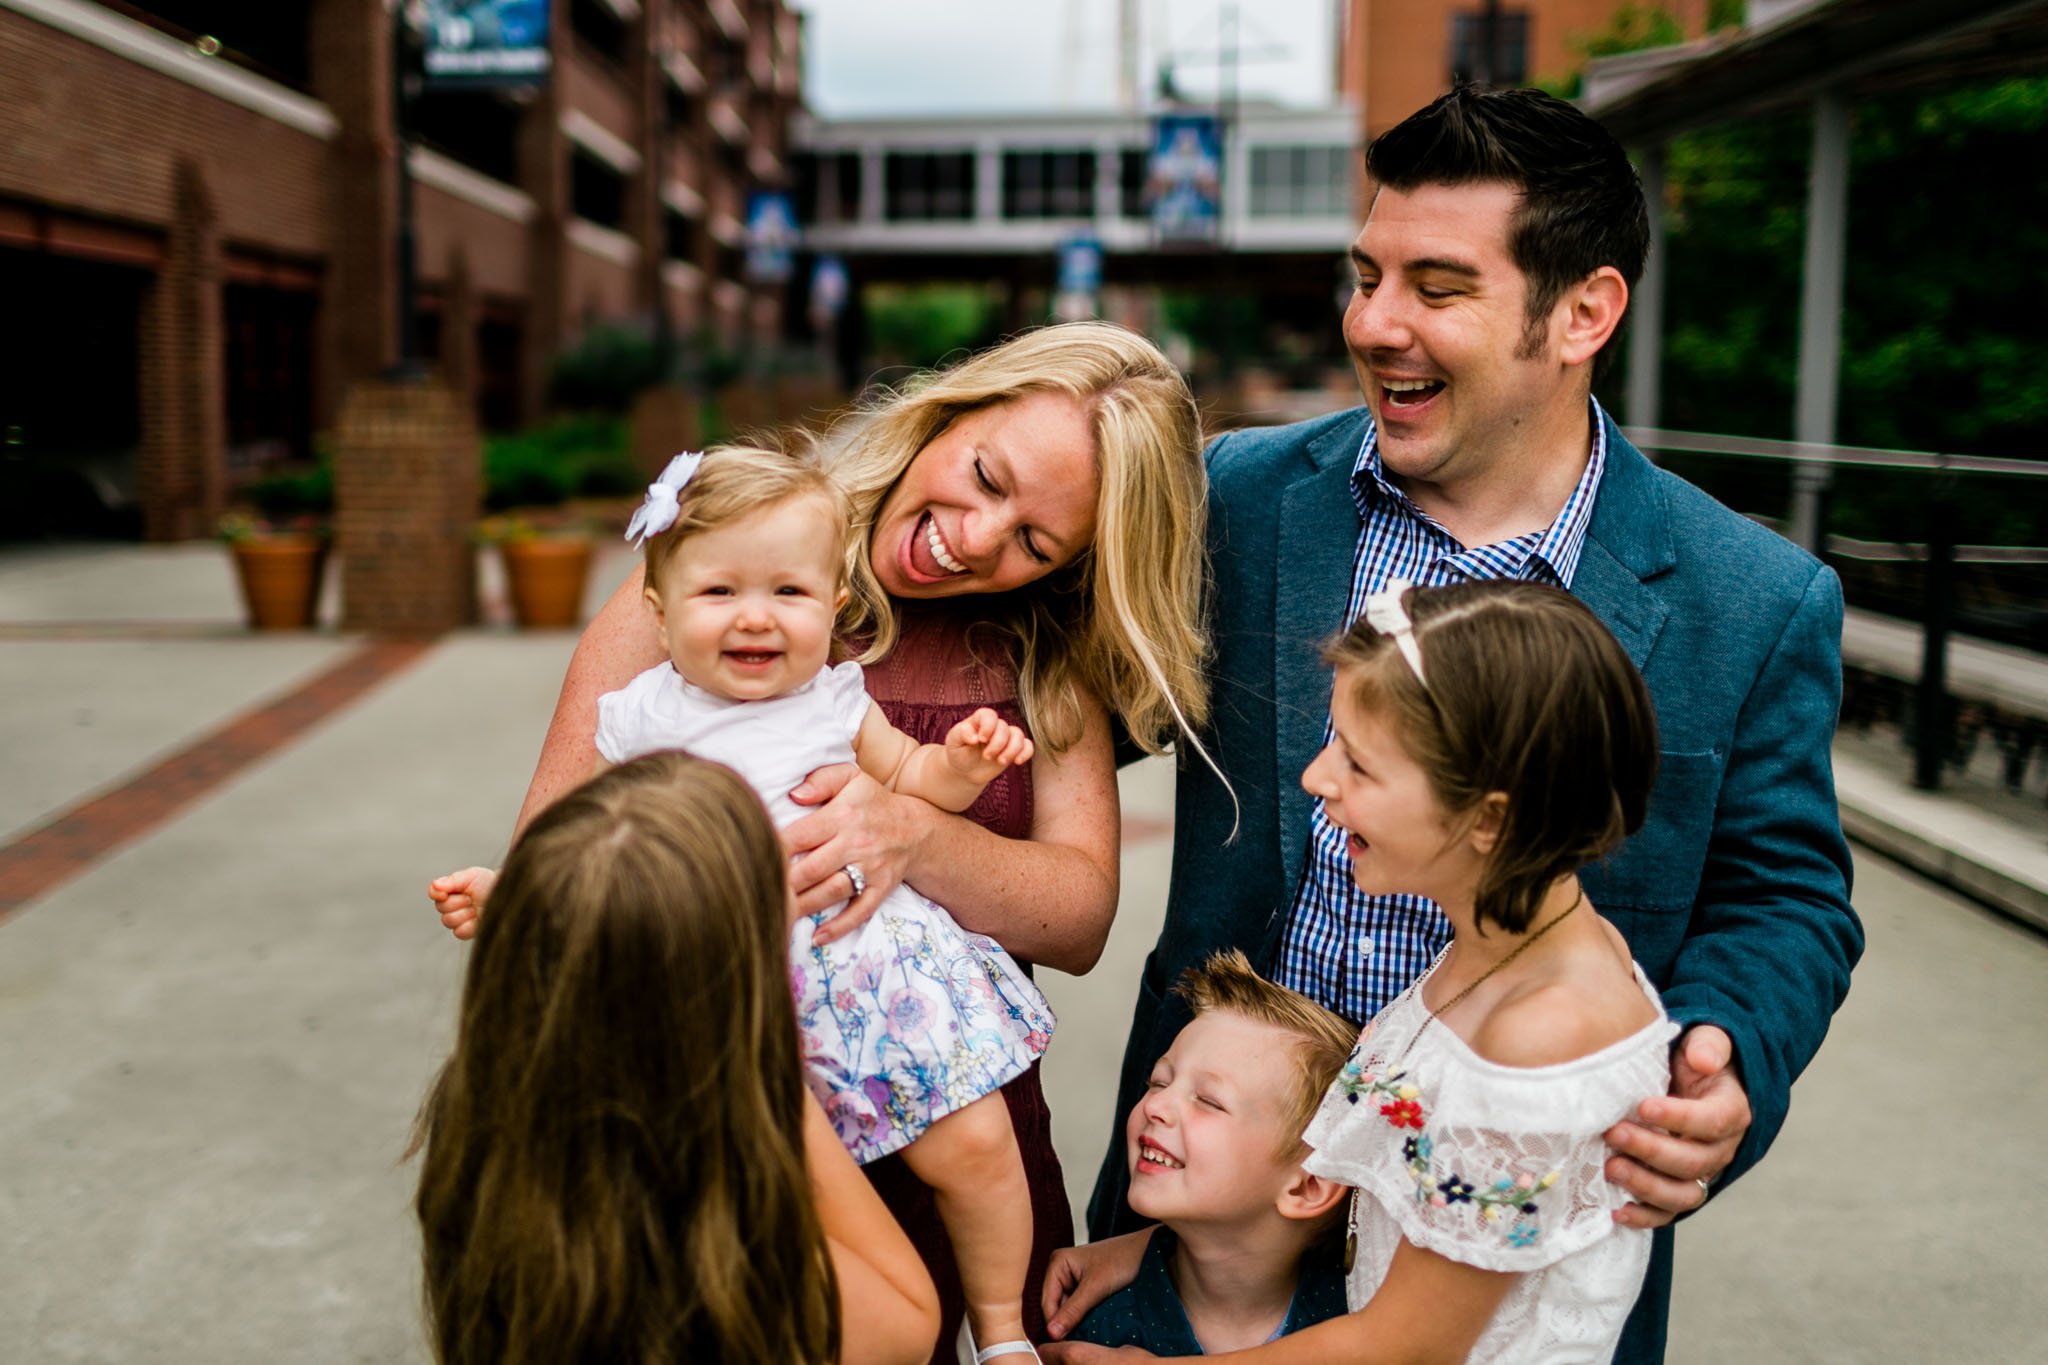 Durham Family Photographer | By G. Lin Photography | Family laughing outdoors together at American Tobacco Campus